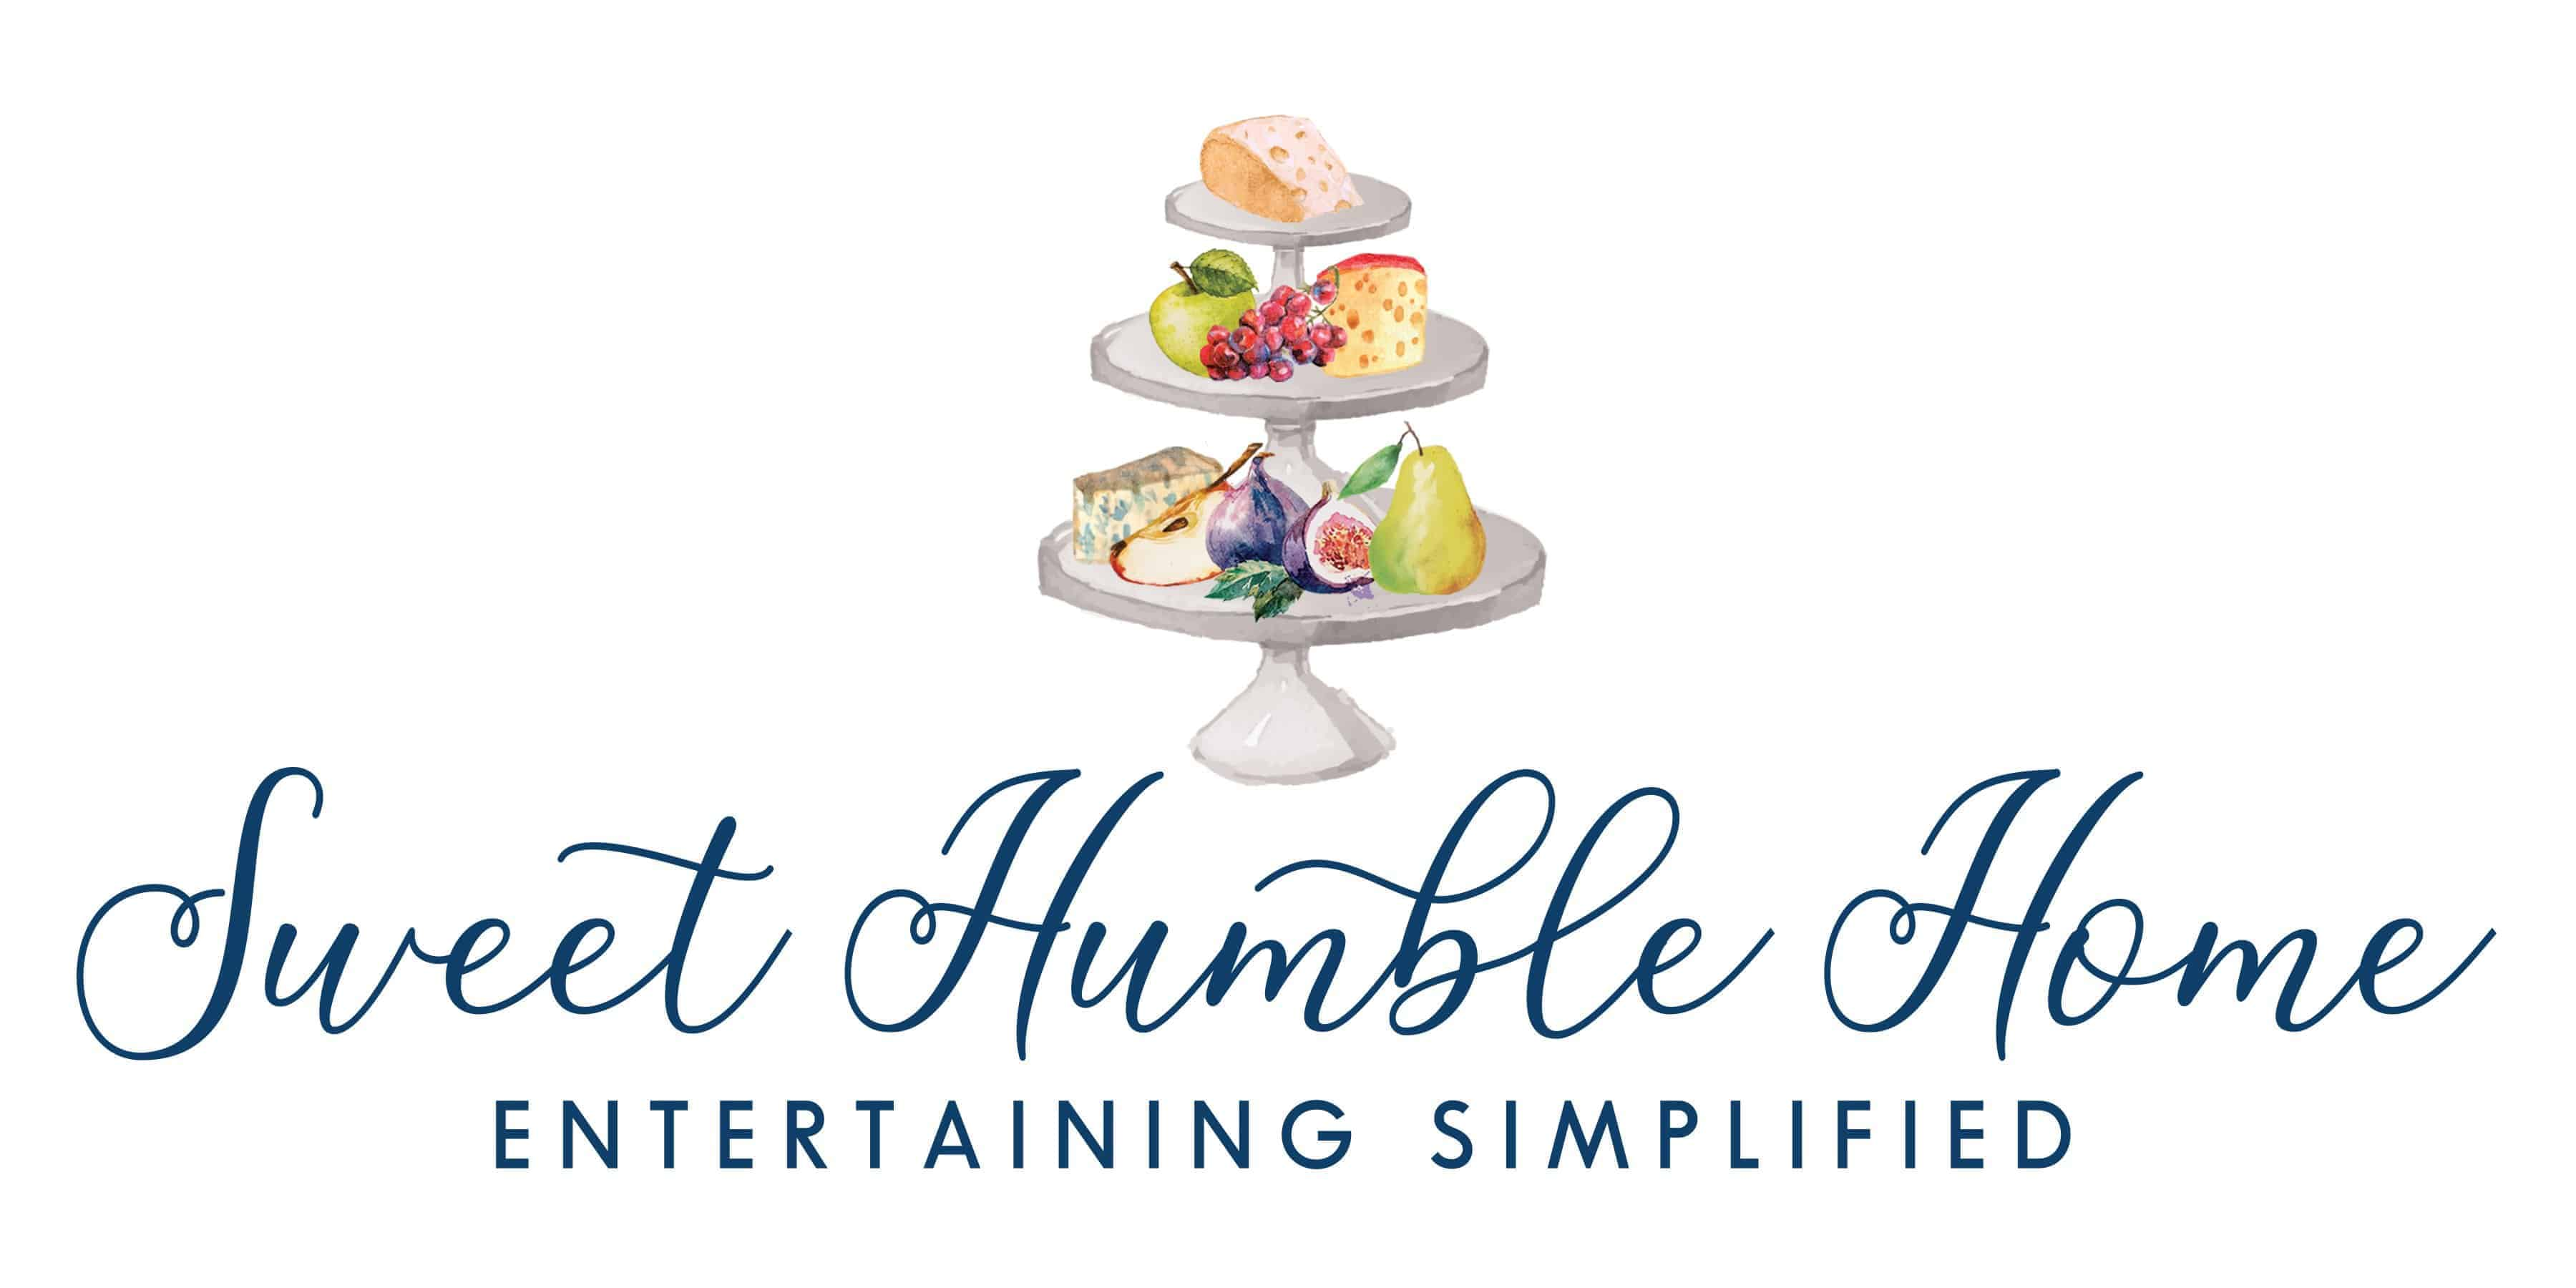 SWEET HUMBLE HOME UPDATED LOGO